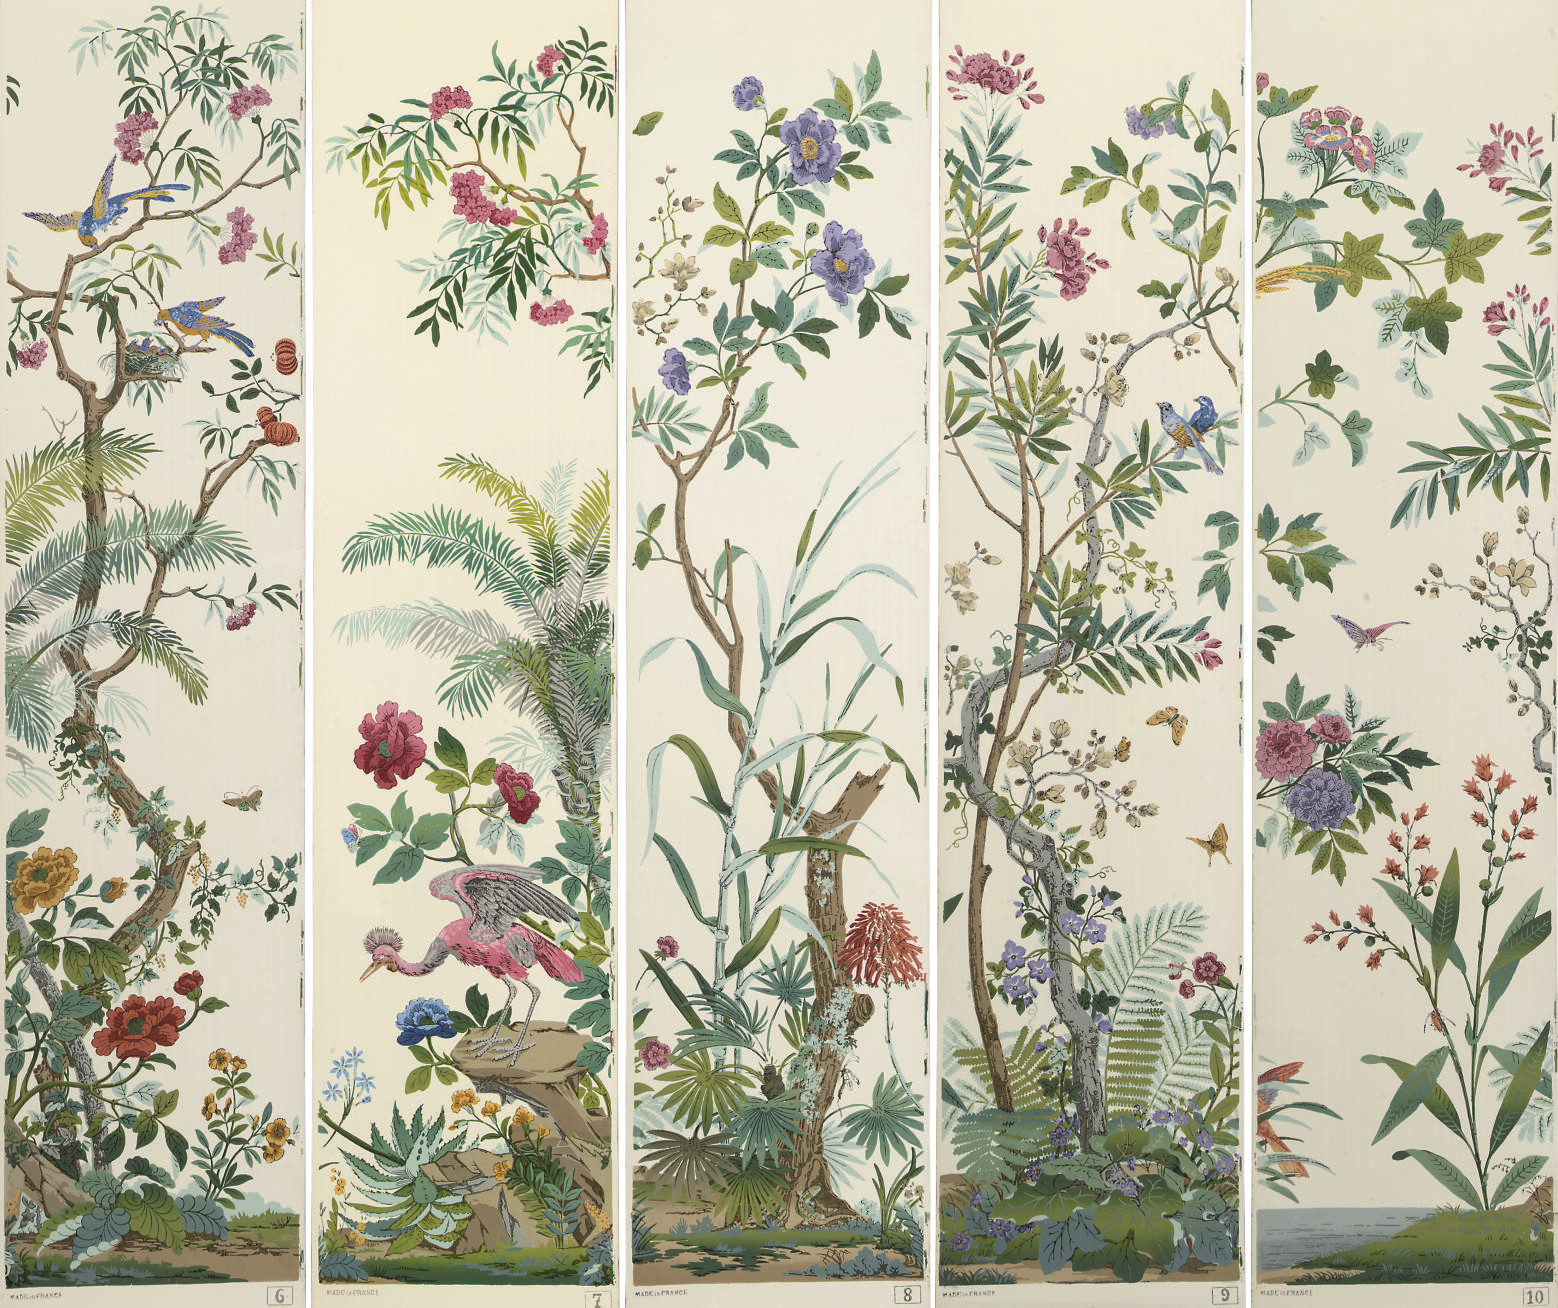 a french panoramic wallpaper 39 decor chinois 39 by zuber 20th century christie 39 s. Black Bedroom Furniture Sets. Home Design Ideas